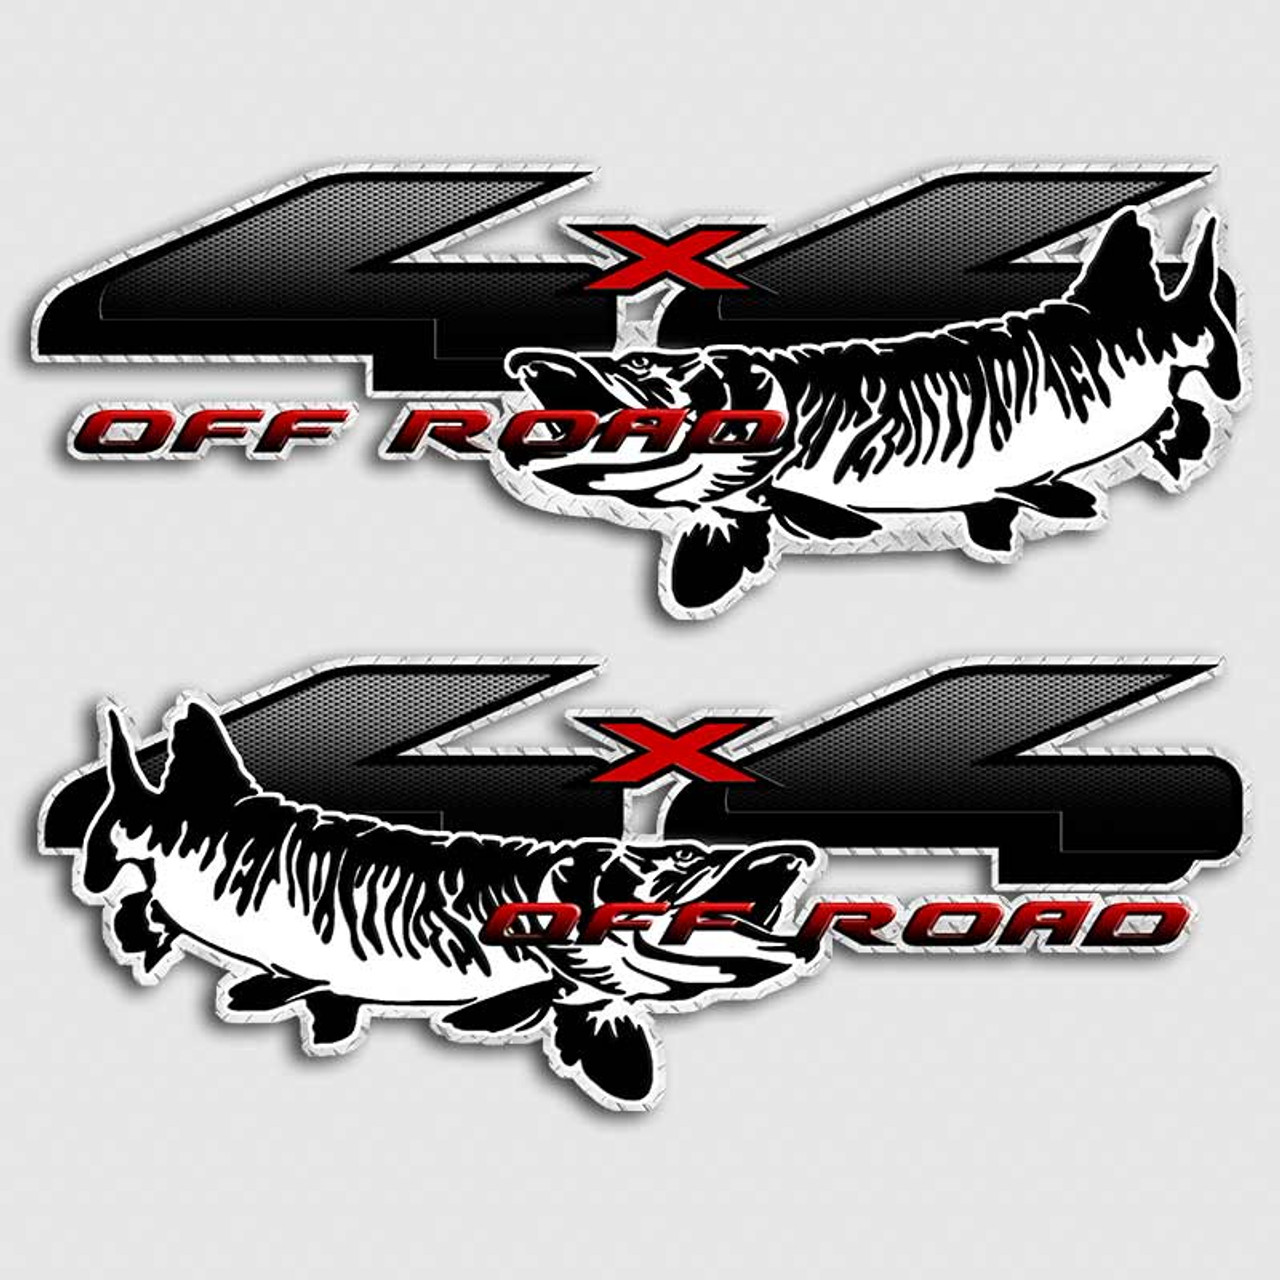 X Fishing Truck Decals Off Road Angling Vehicle Stickers - Truck decals